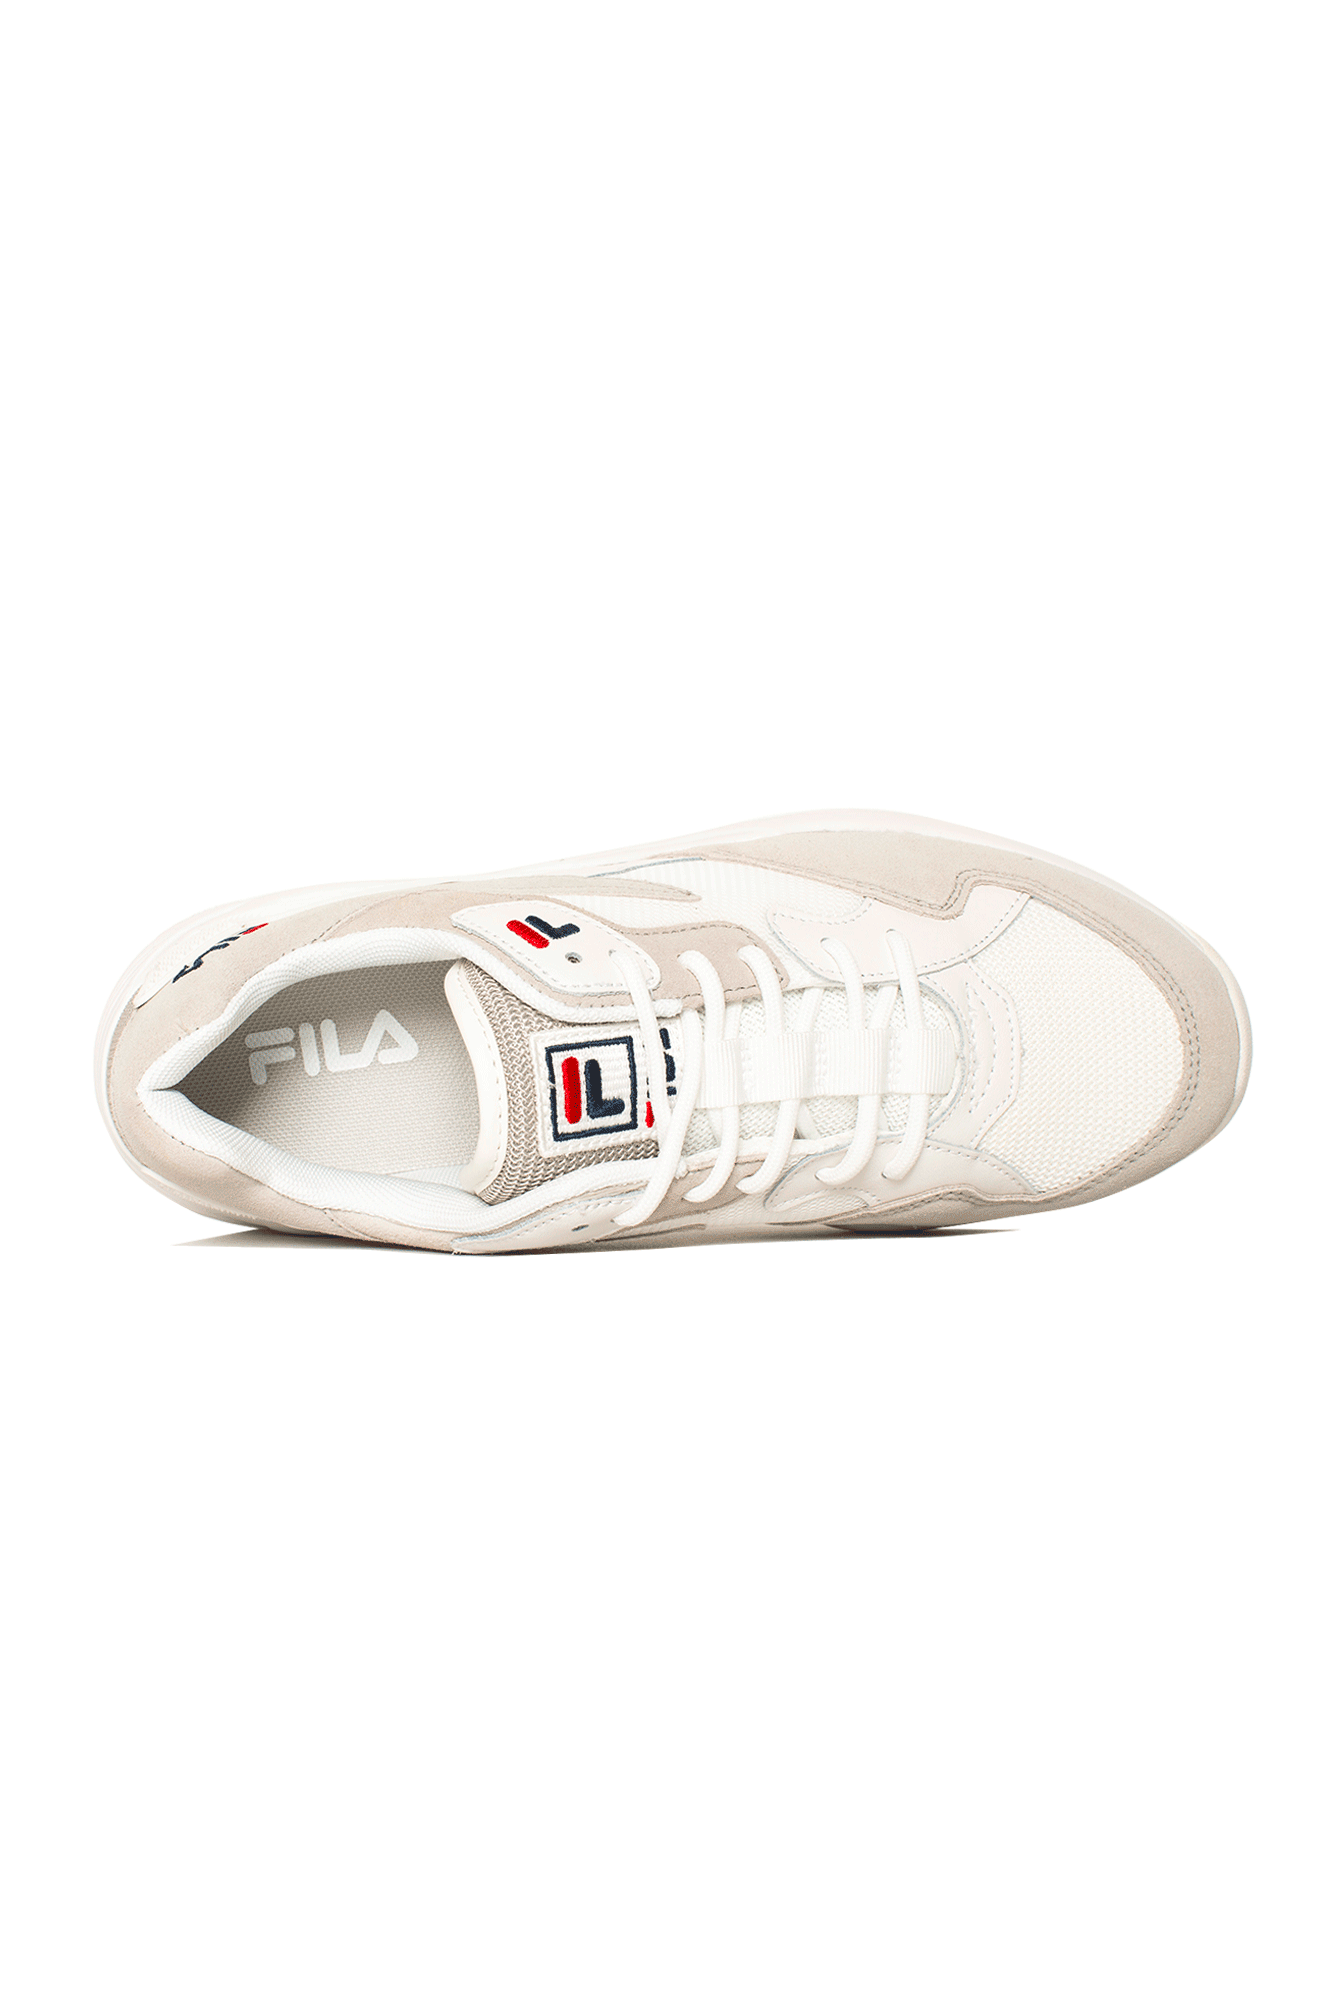 Fila Sneakers Vault CMR Jogger L Low Bianco 1010587#000#1FG#7,5 - One Block Down